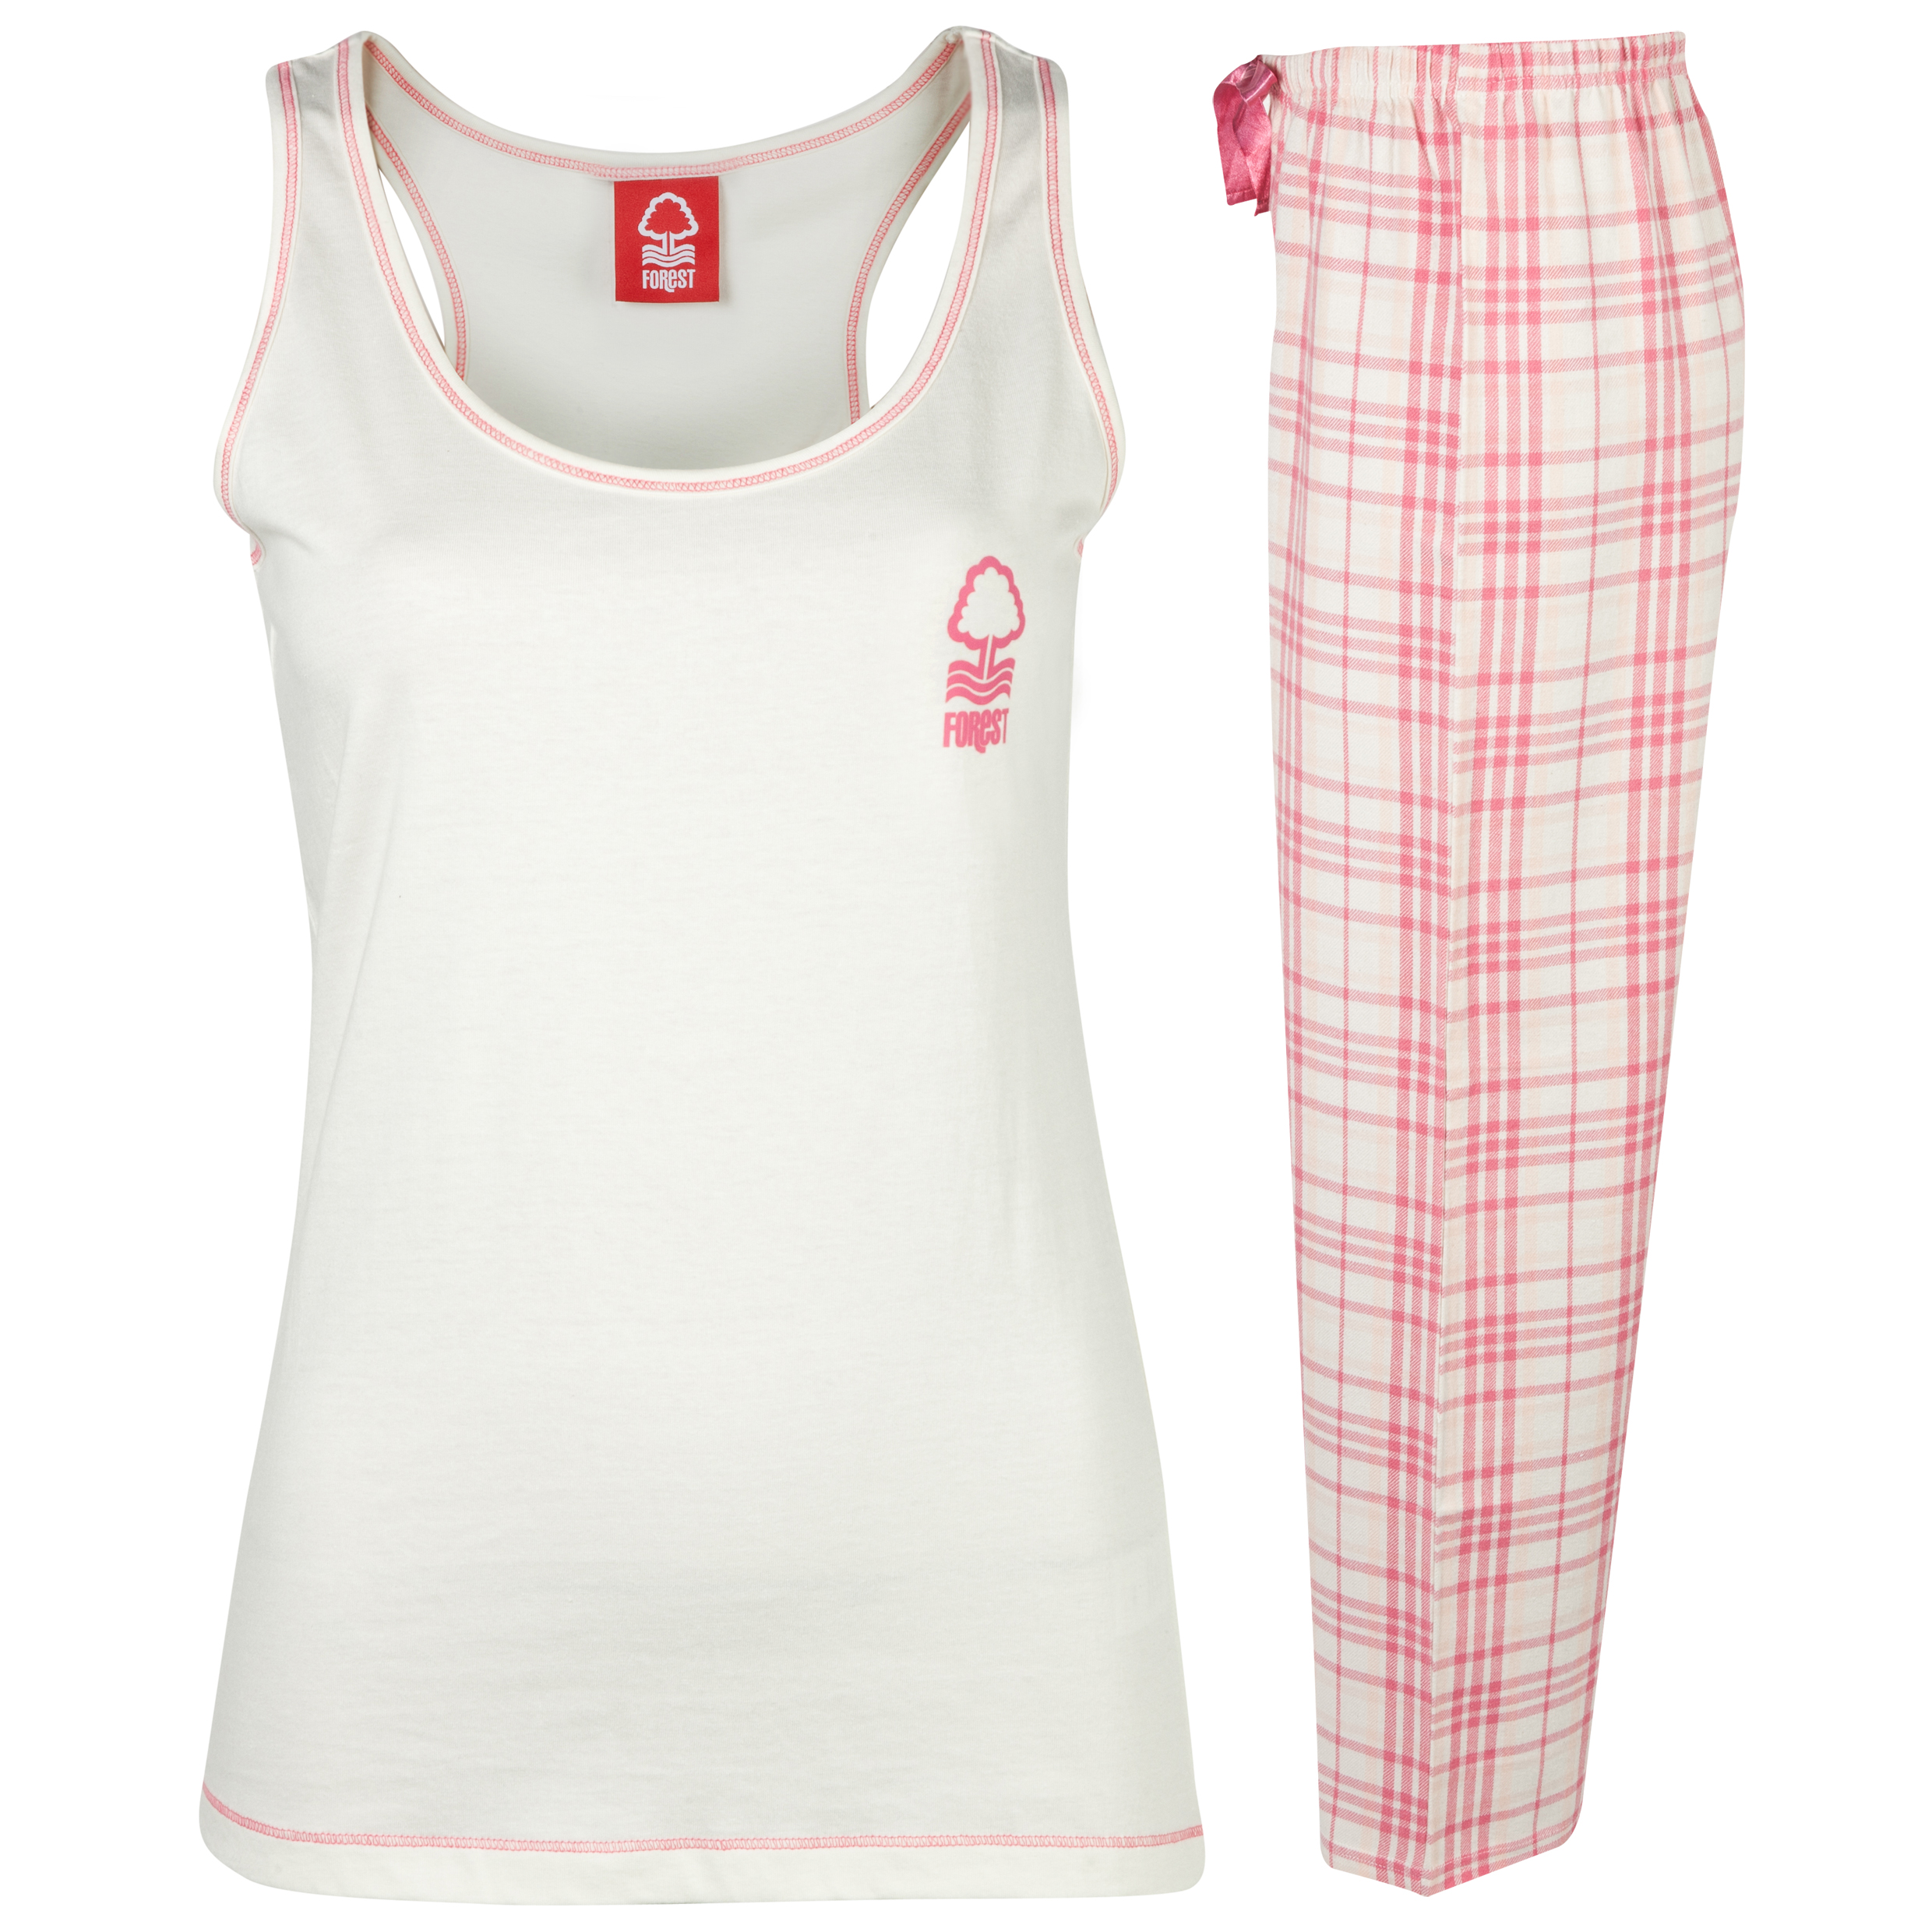 Nottingham Forest Check Pyjamas Womens Pink